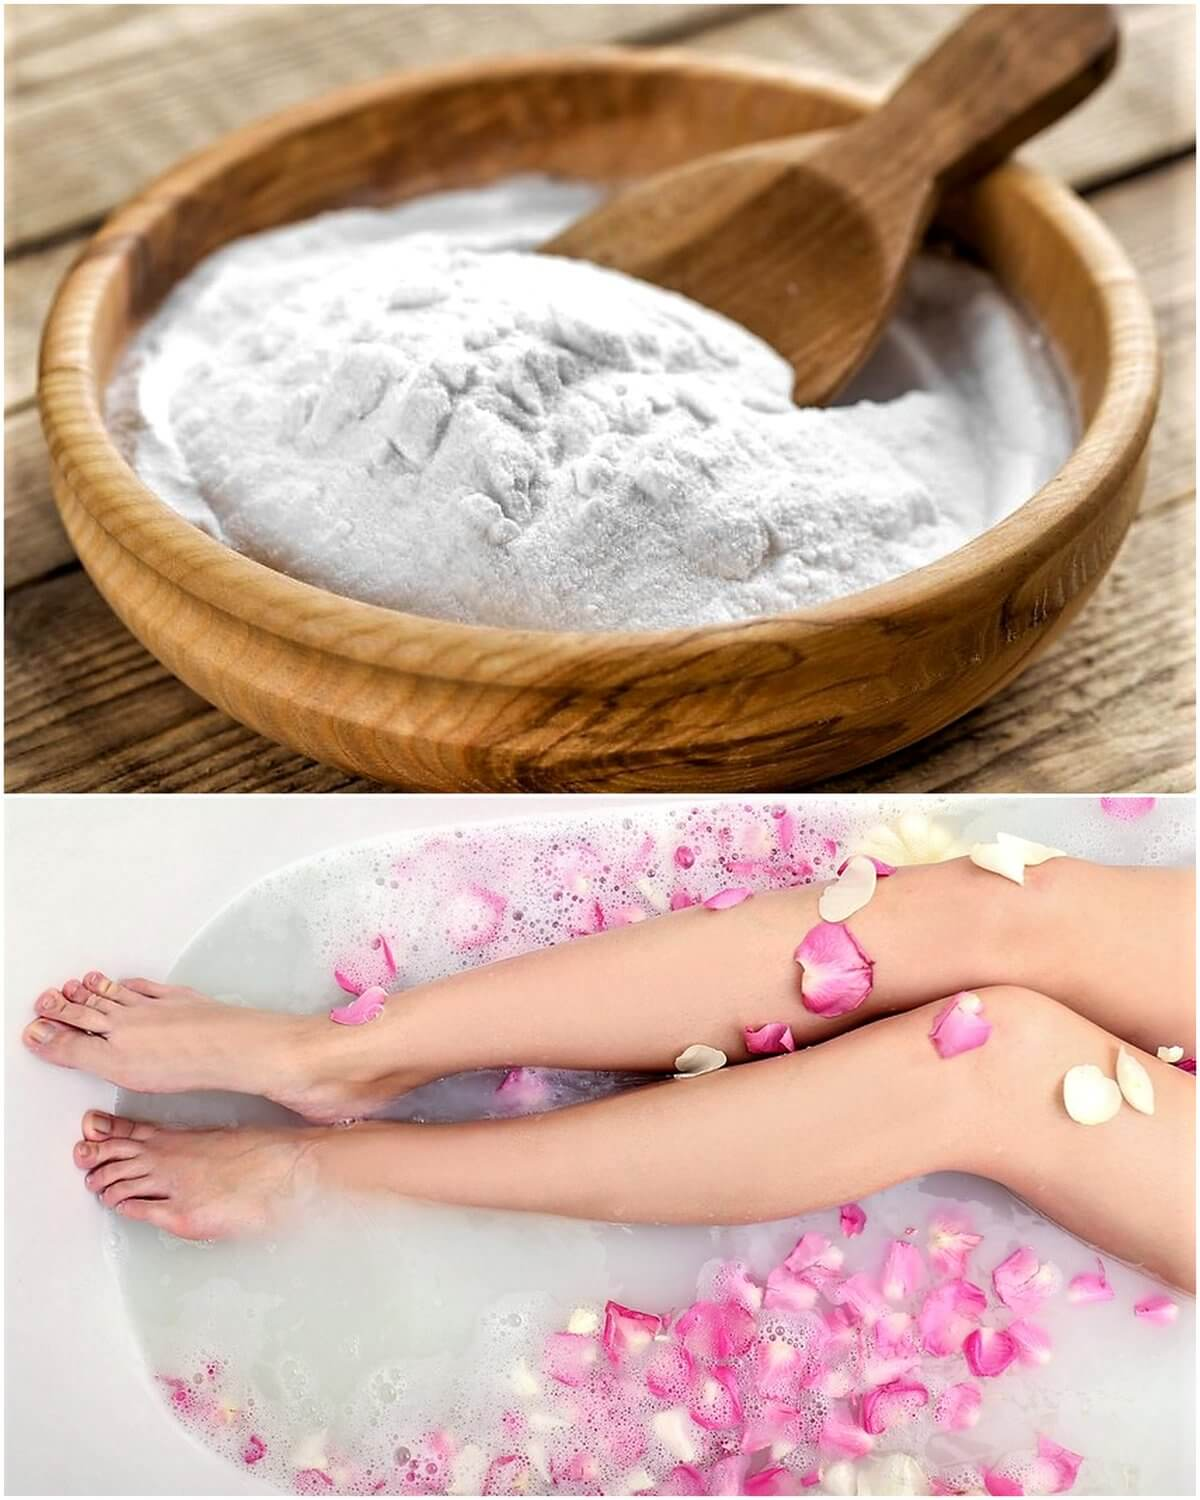 Baking Soda Exfoliate Legs Baking Soda Uses And Diy Home Remedies